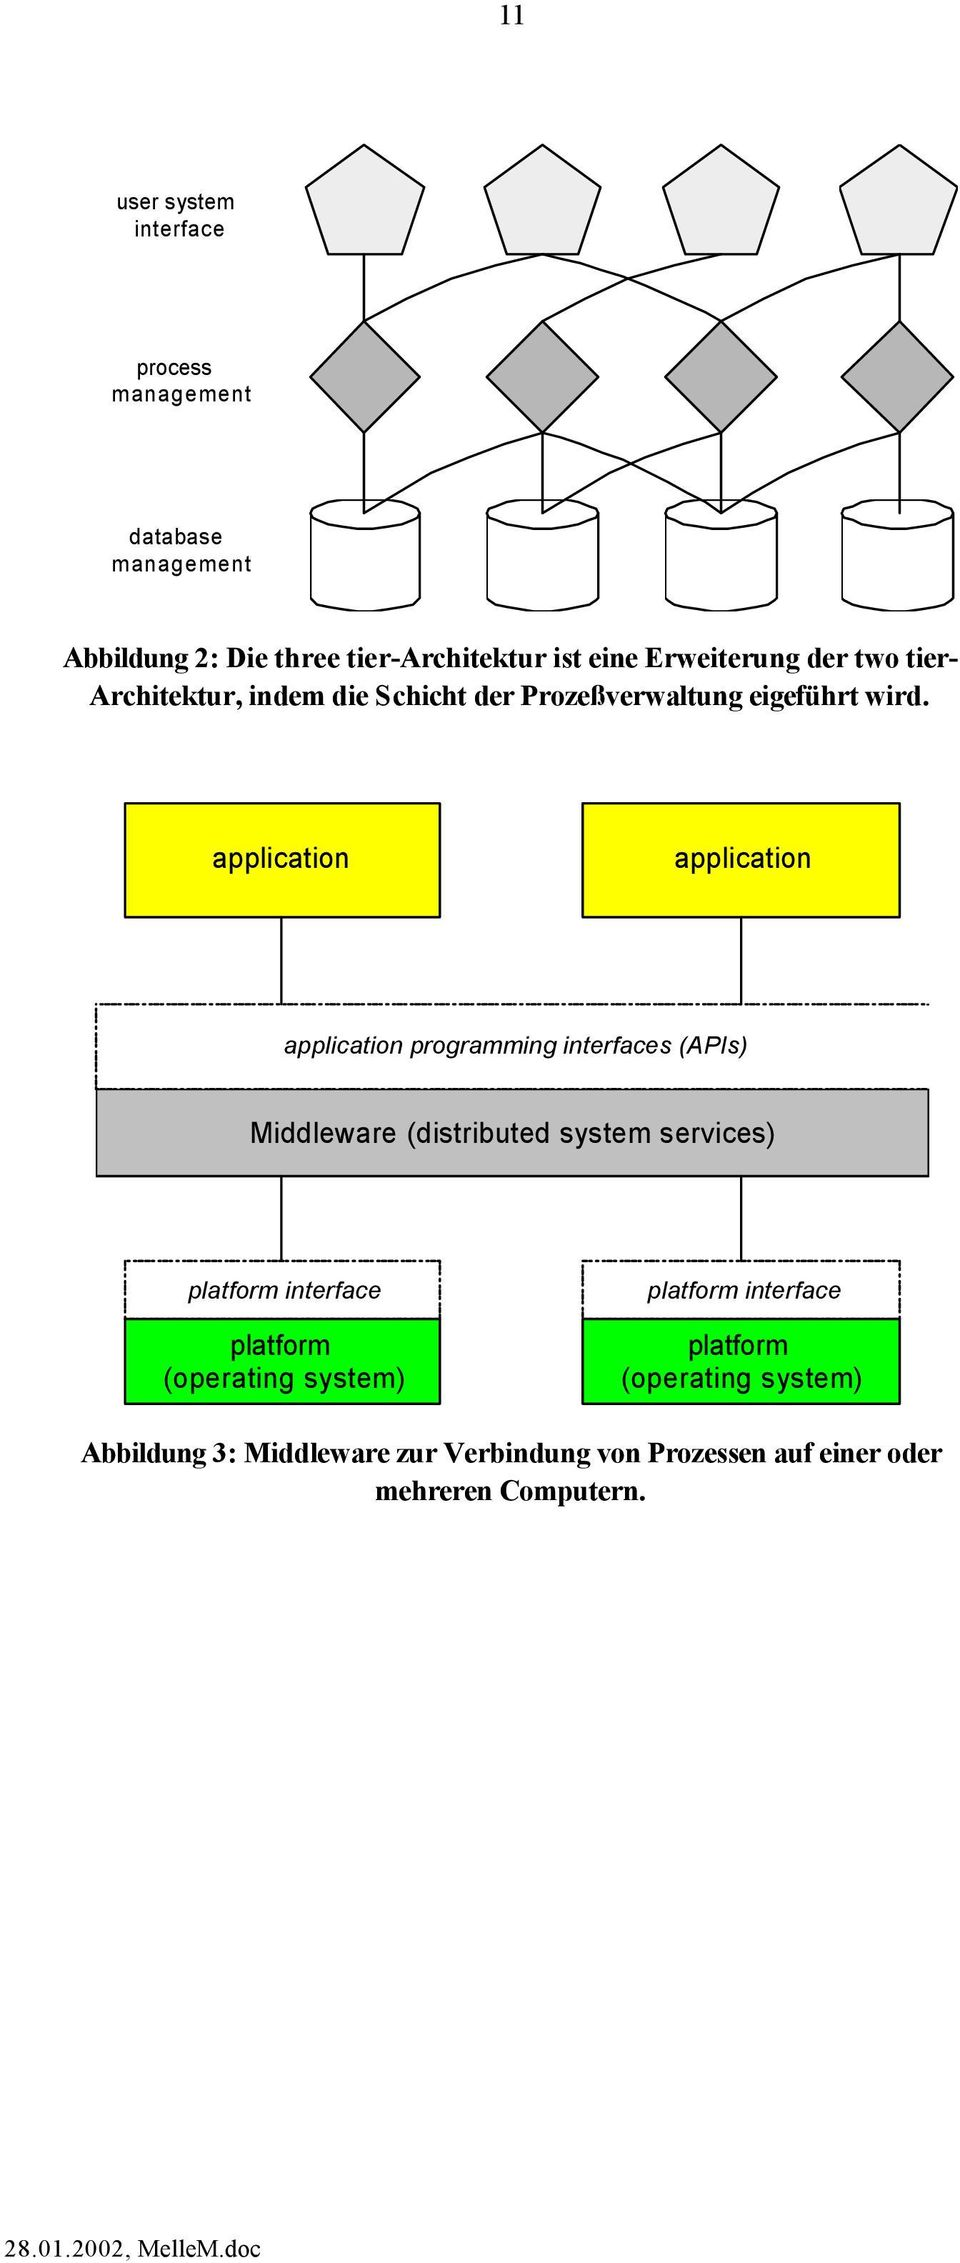 application application application programming interfaces (APIs) Middleware (distributed system services) platform